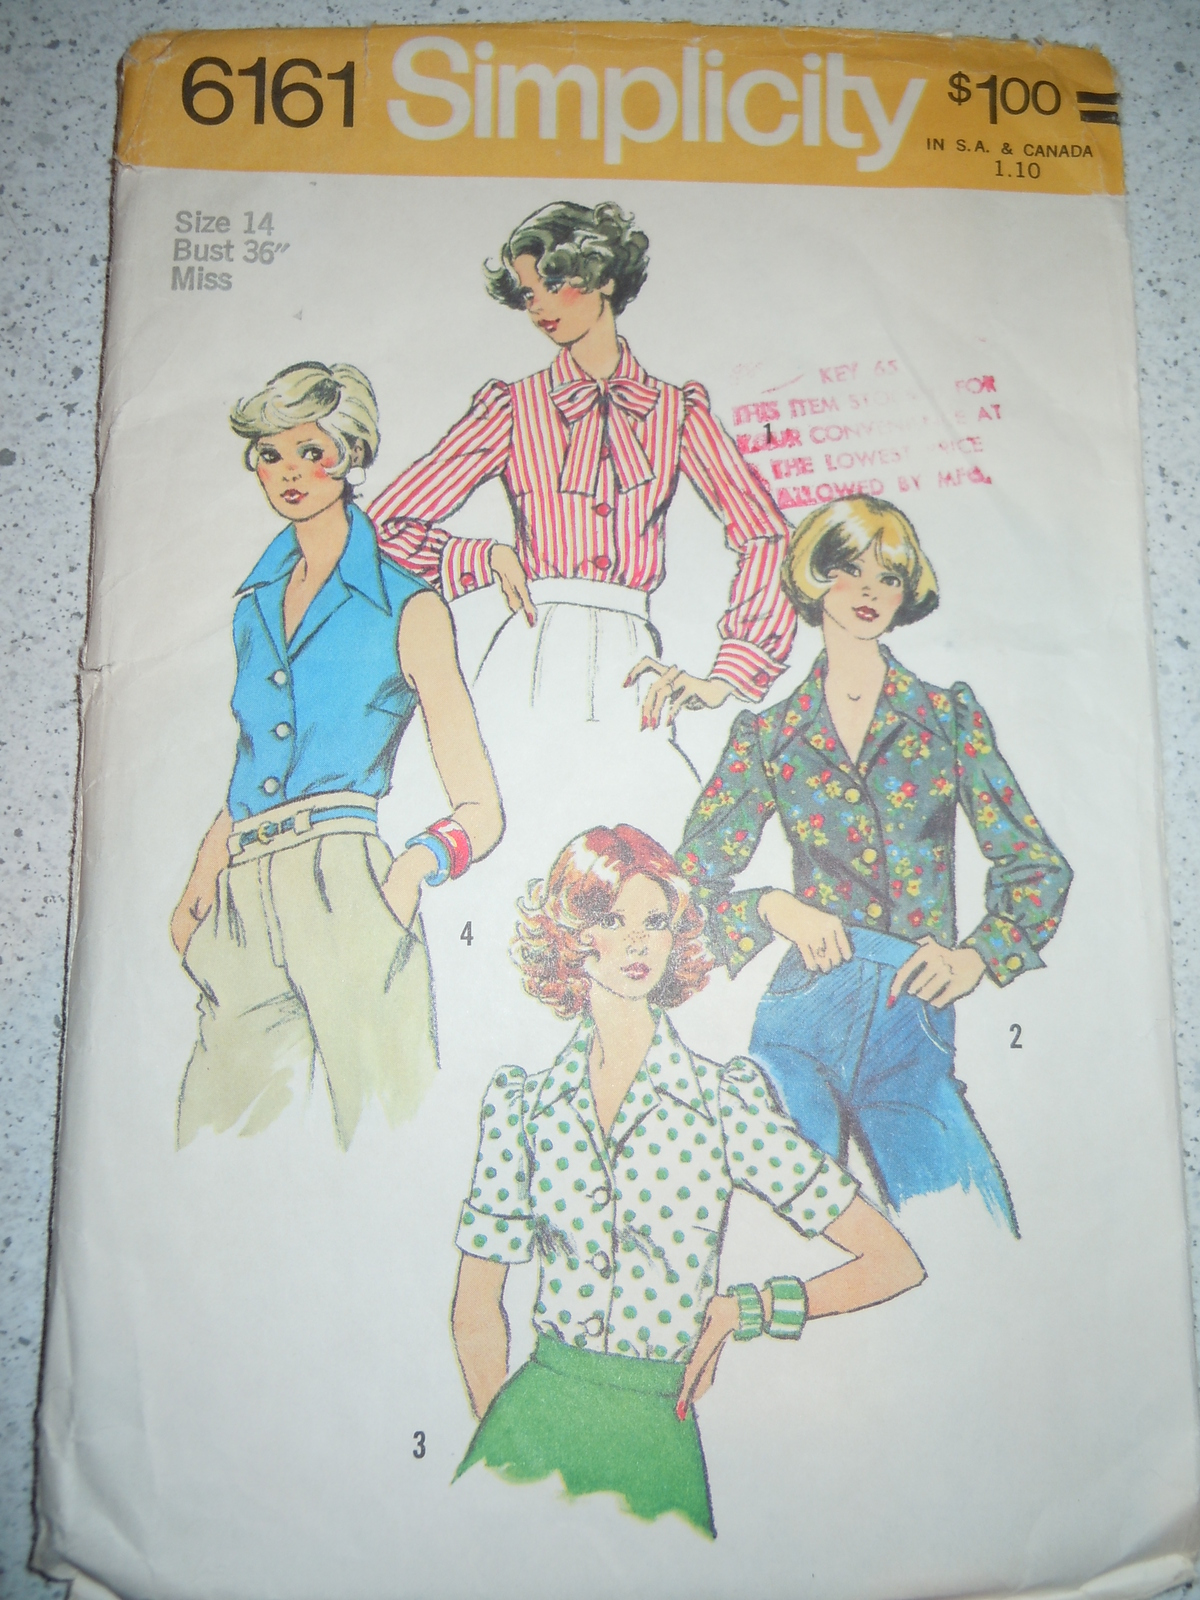 Simplicity 1965 Sewing Pattern (1960s): 16 listings